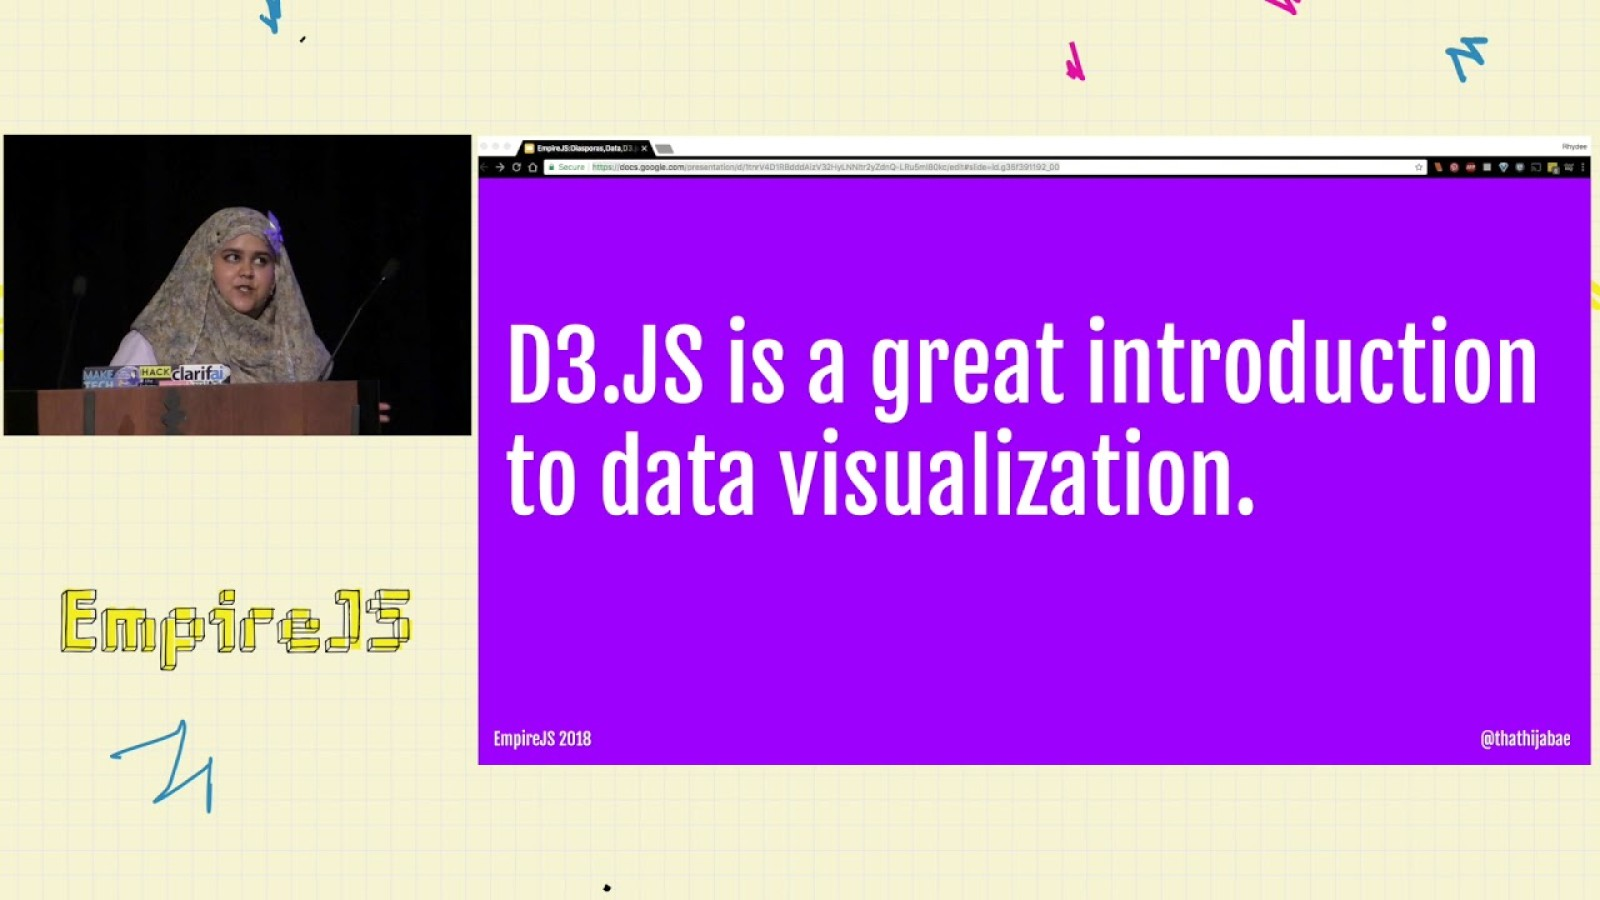 Diasporas, Data, D3.js, Oh my!